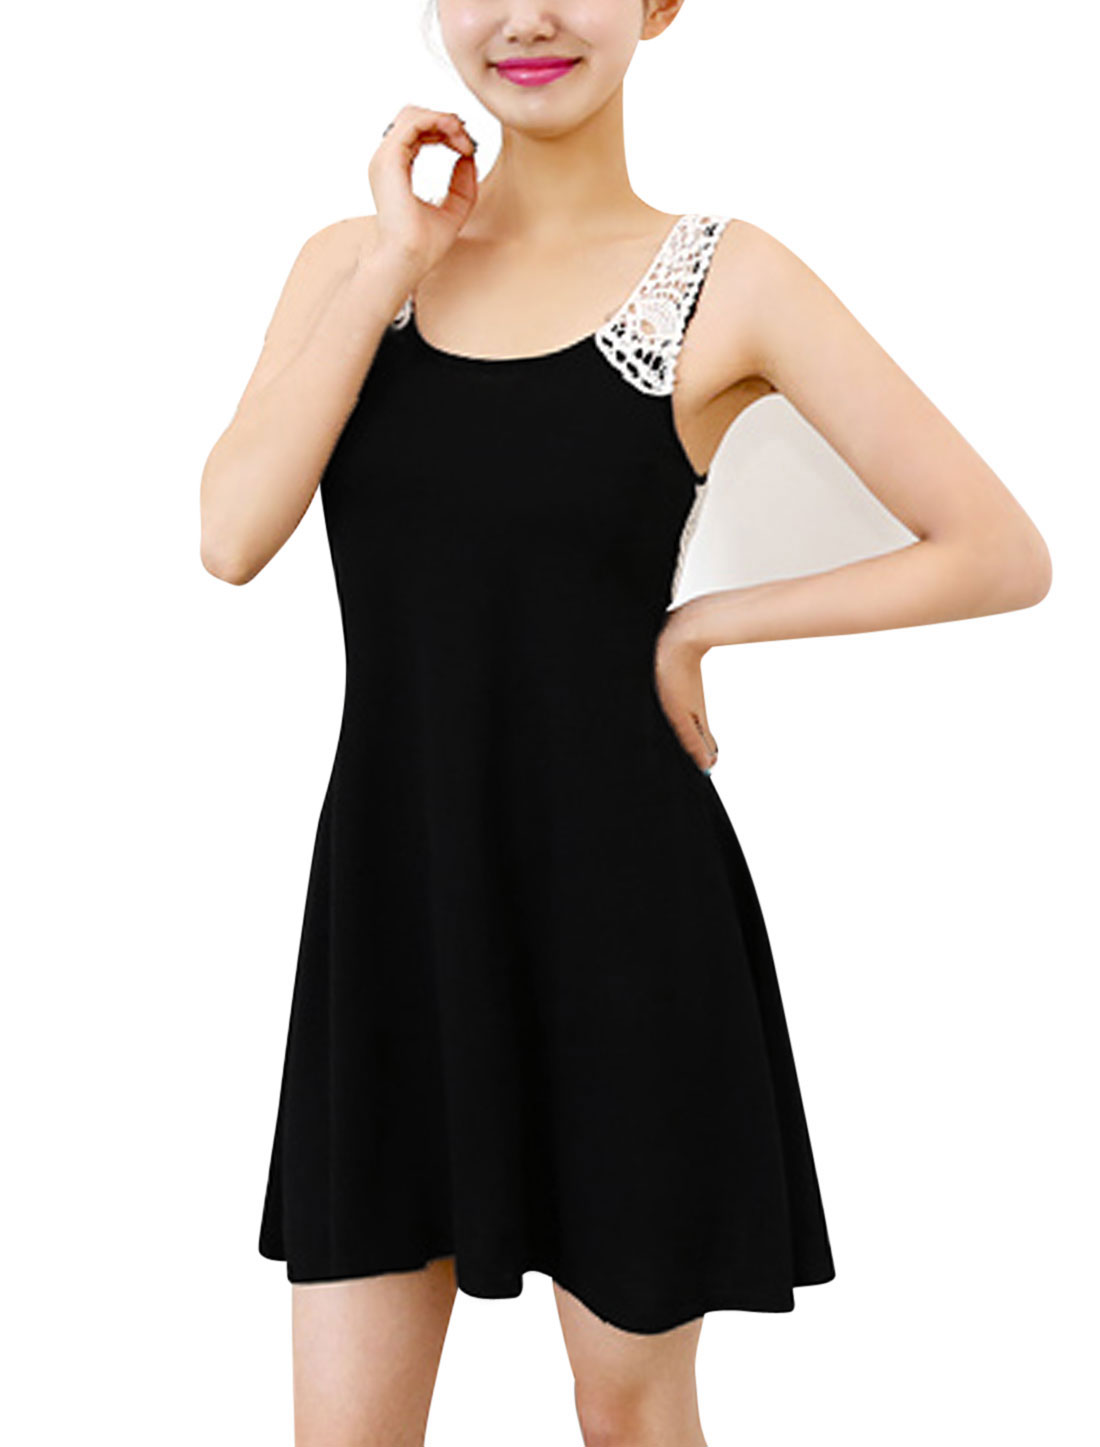 Lady's Crochet Panel U Neck Slim Fit Above Knee Dress Black XS